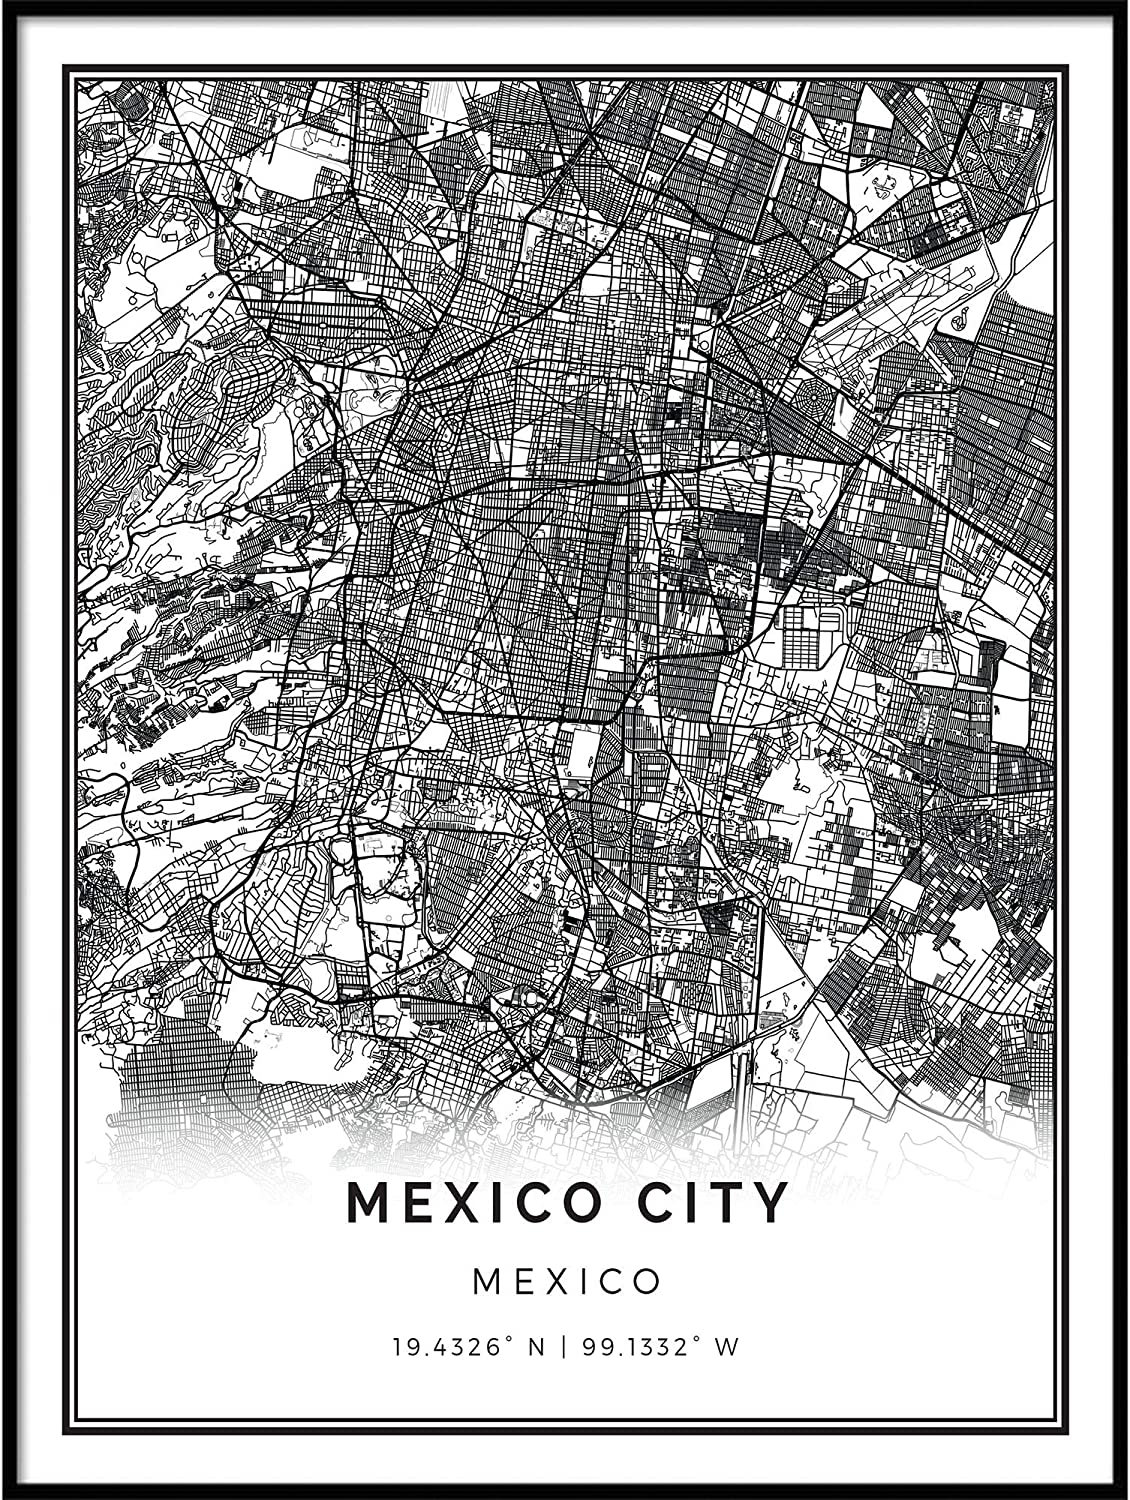 Squareious Mexico City map Poster Print   Modern Black and White Wall Art    Scandinavian Home Decor   Mexico City Prints Artwork   Fine Art Posters ...